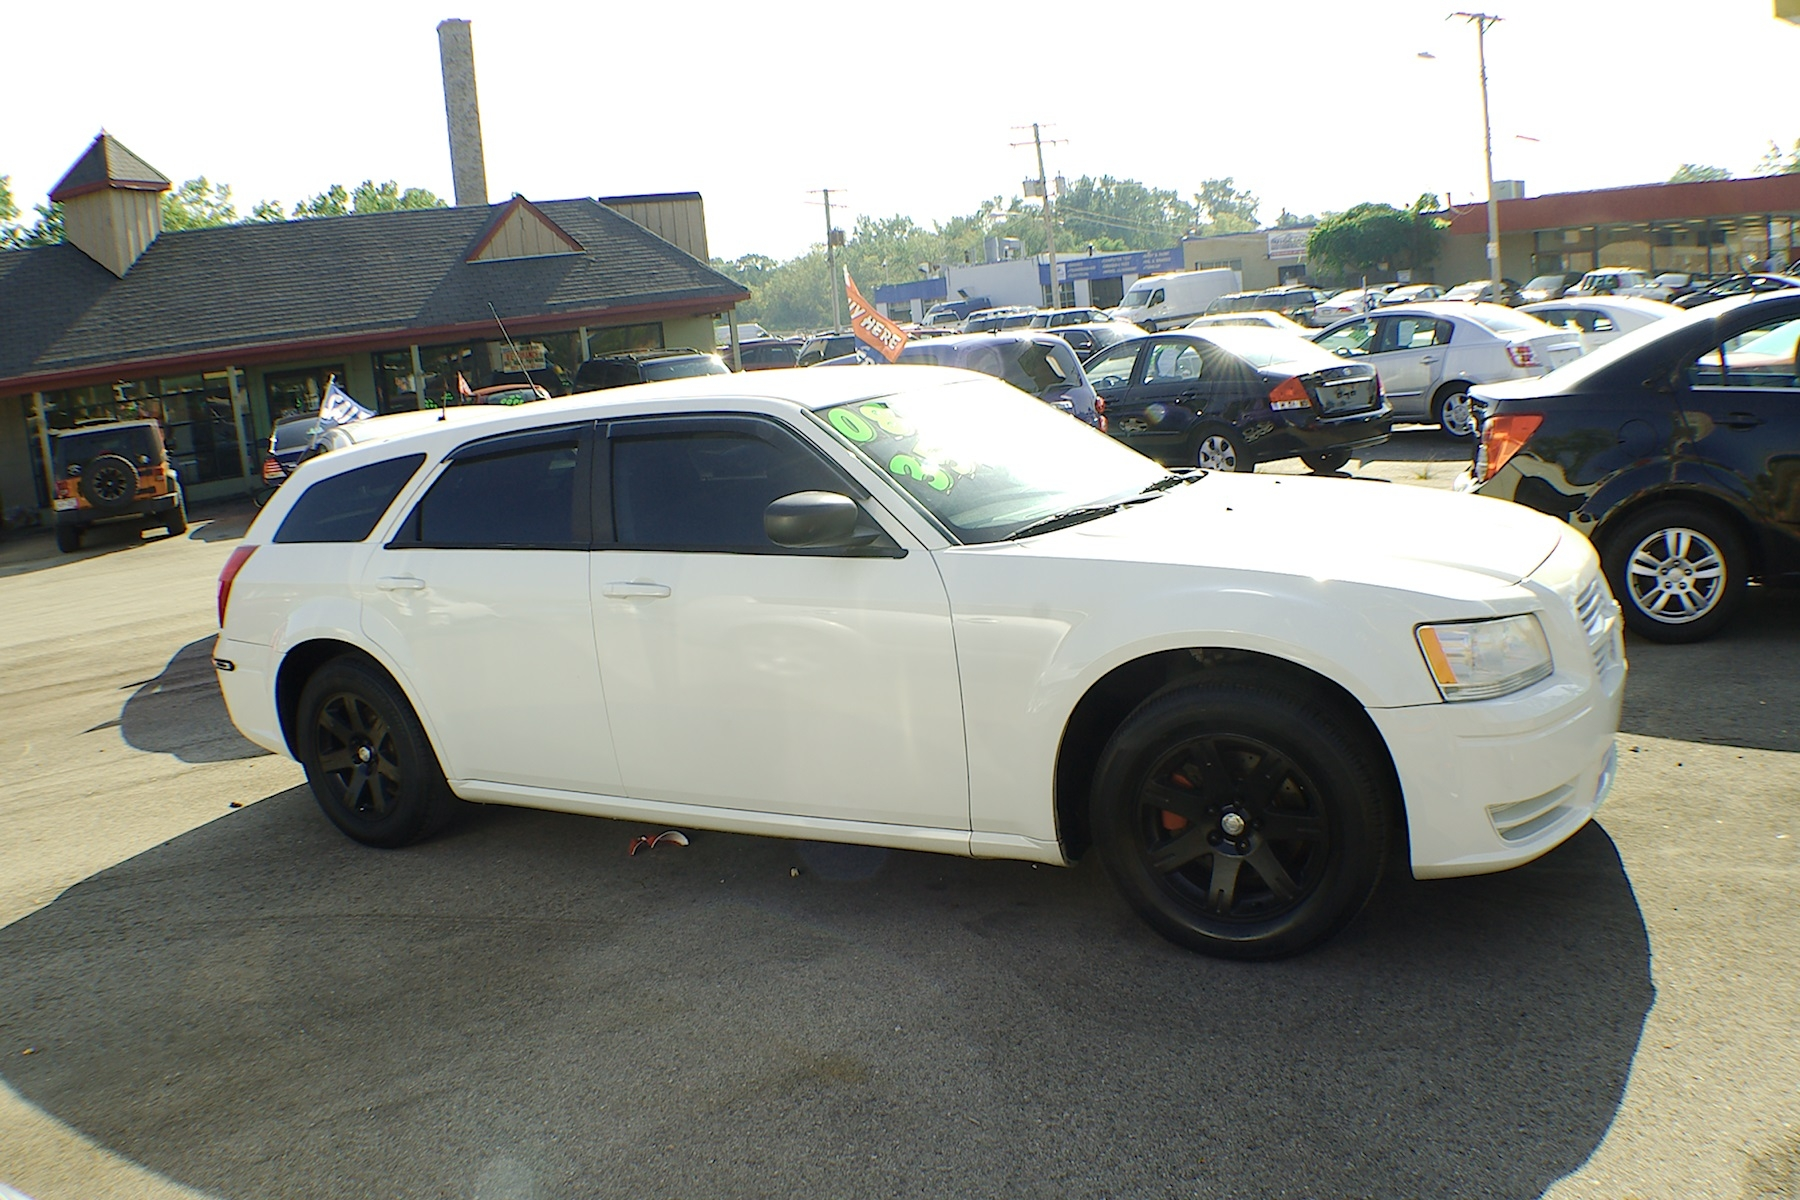 2008 Dodge Magnum White Used Sedan Wagon Sale Bannockburn Barrington Beach Park